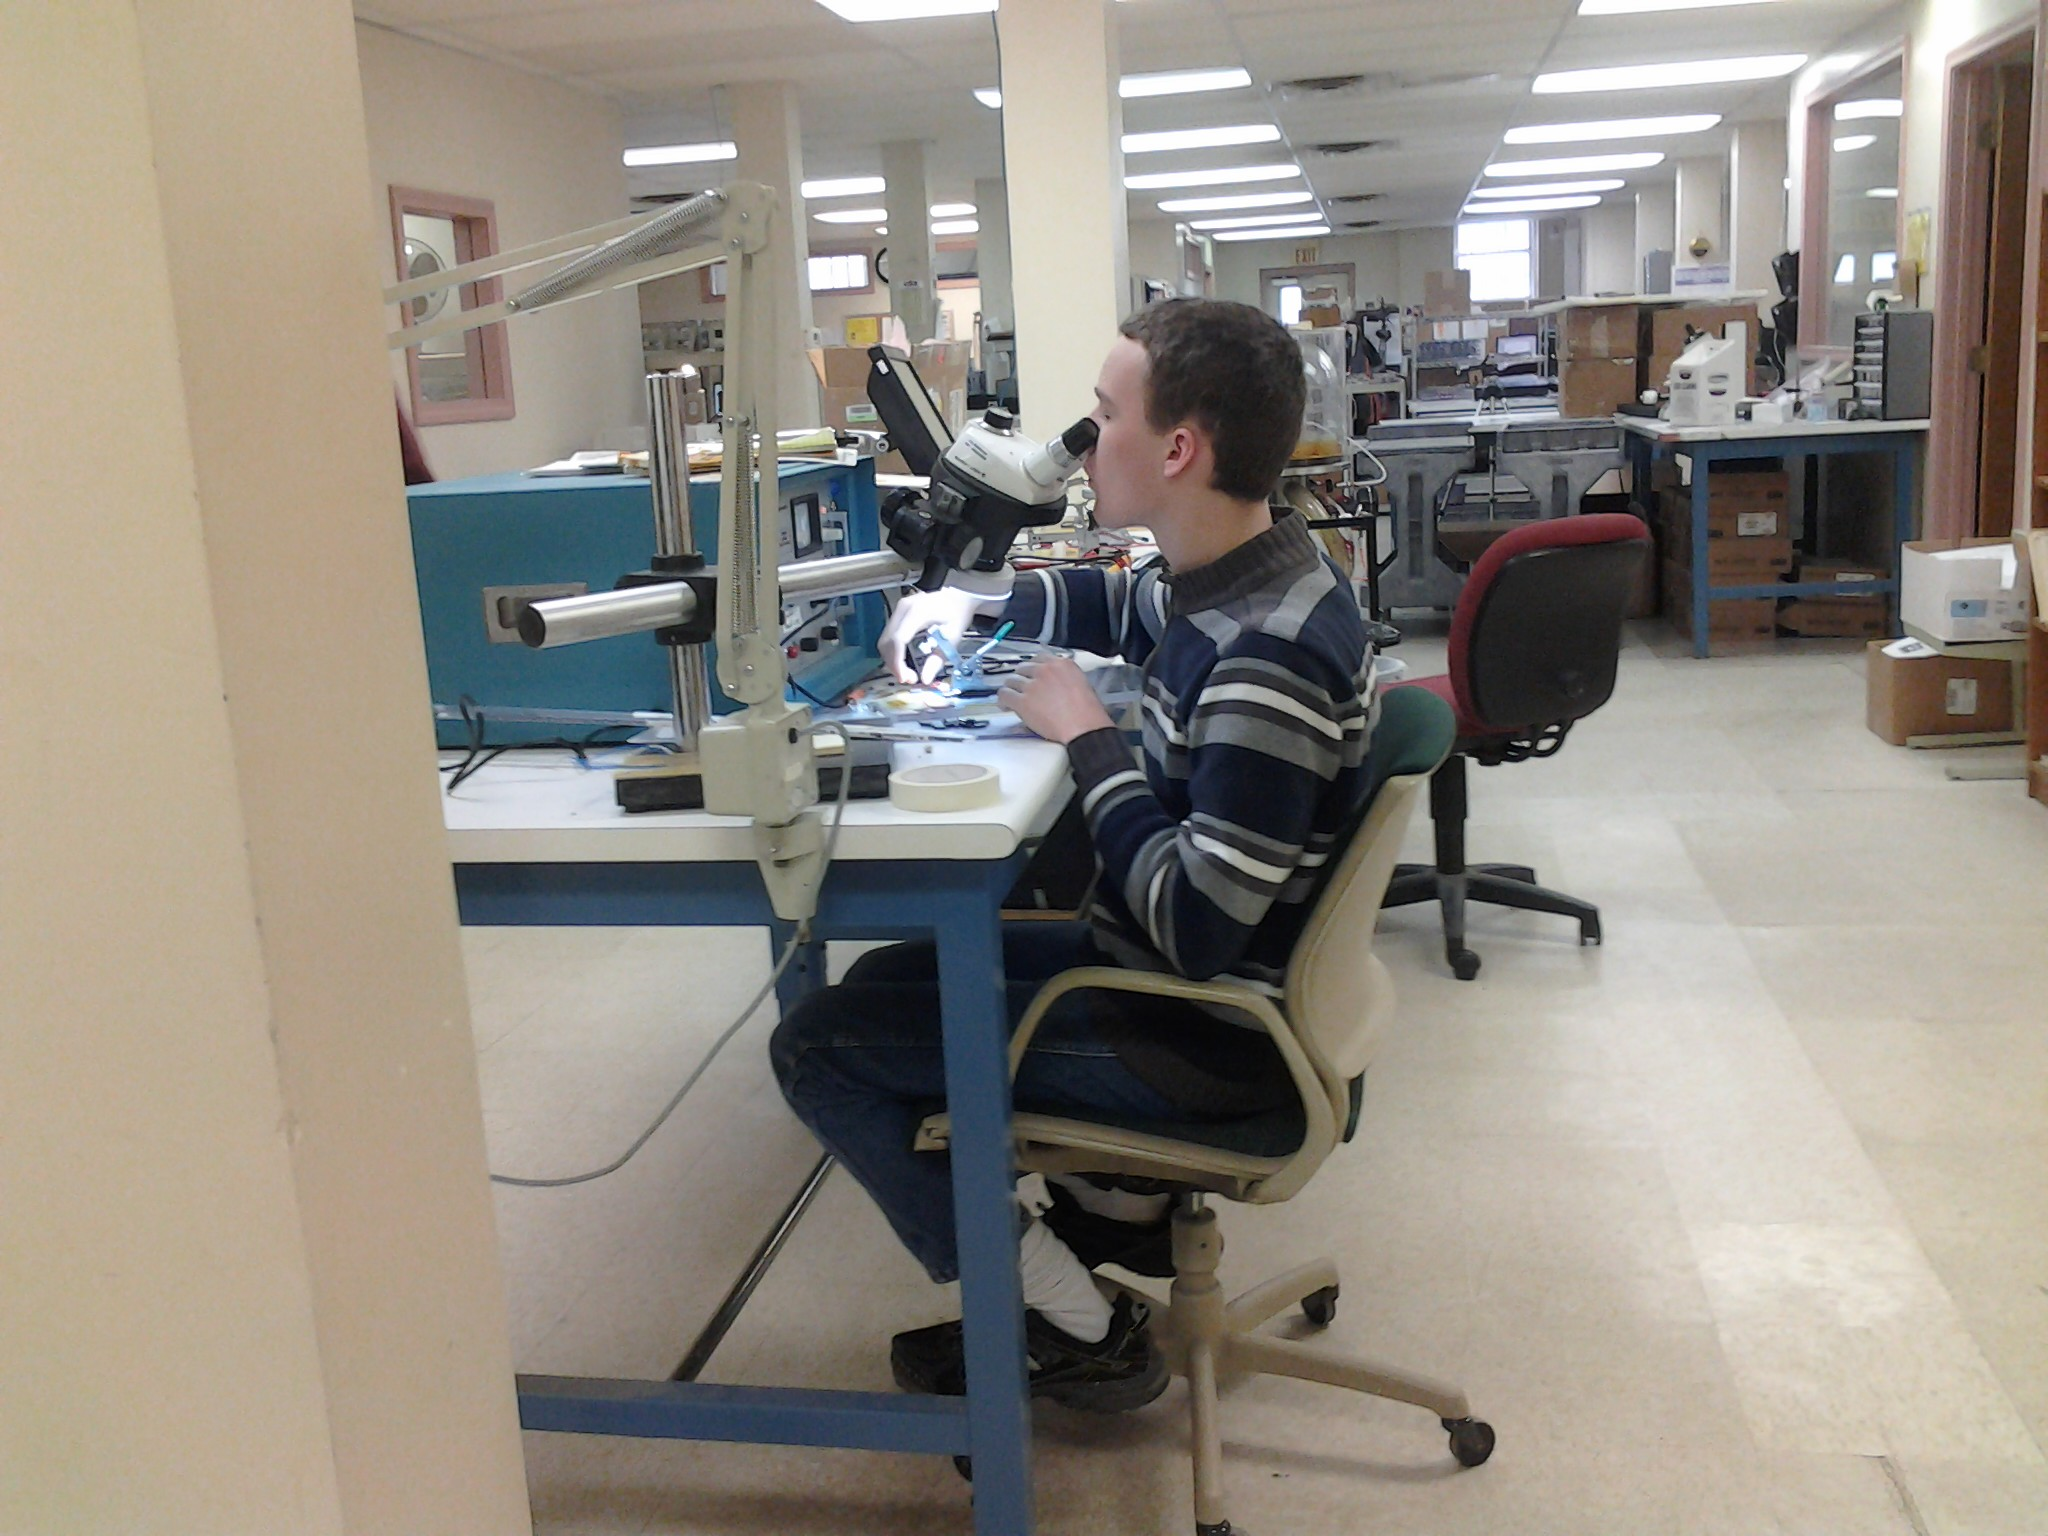 Ben using the sterio microscope at work